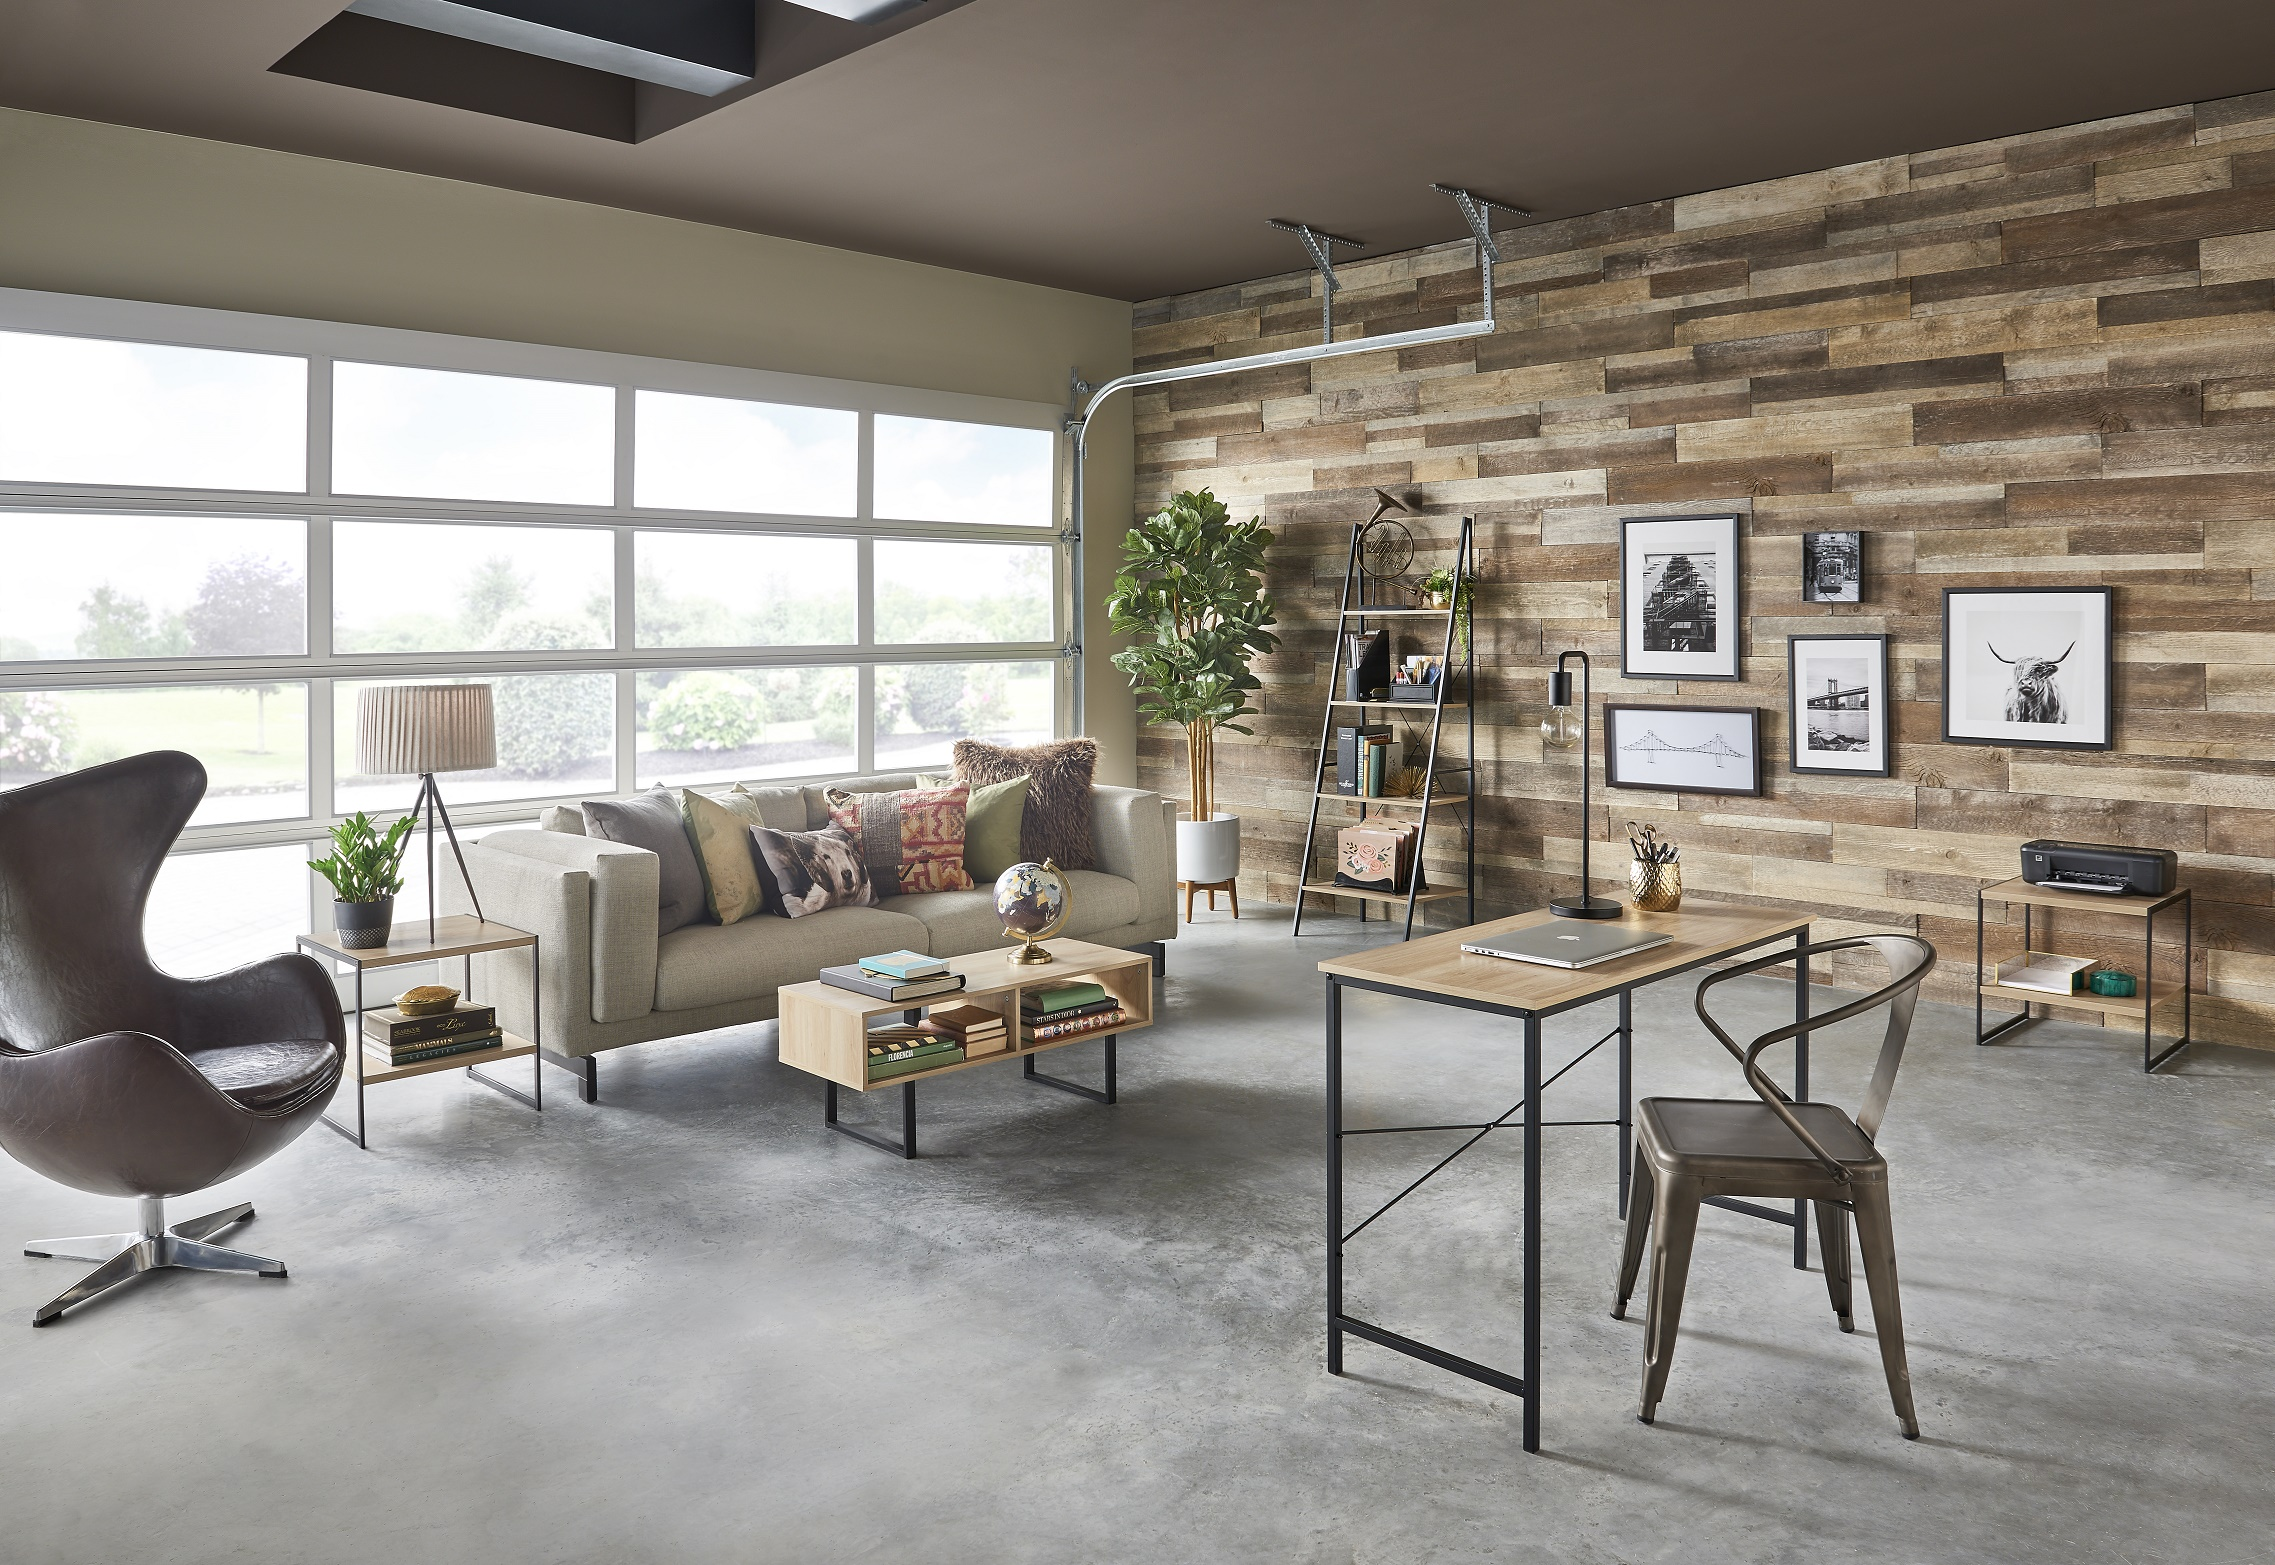 Five Organization Tips for Open Floor Plans